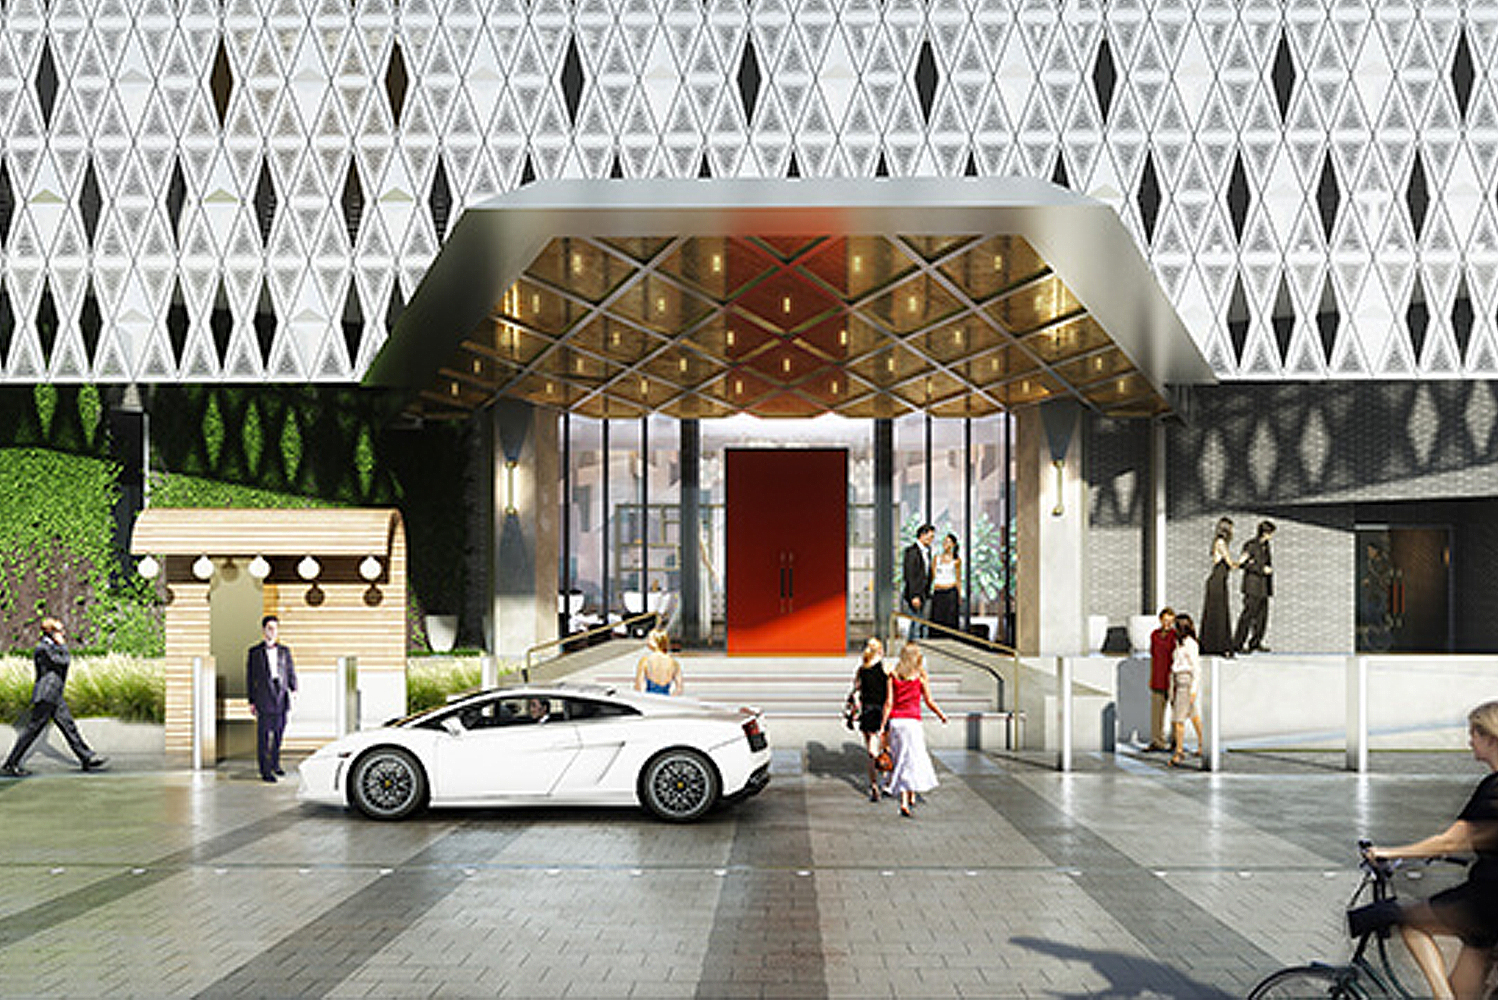 Virgin Hotels Dallas will have a Funny Library Coffee Shop, which will be located on the first level of the hotel. The coffee shop is a communal work space that will house an assortment of books and games.